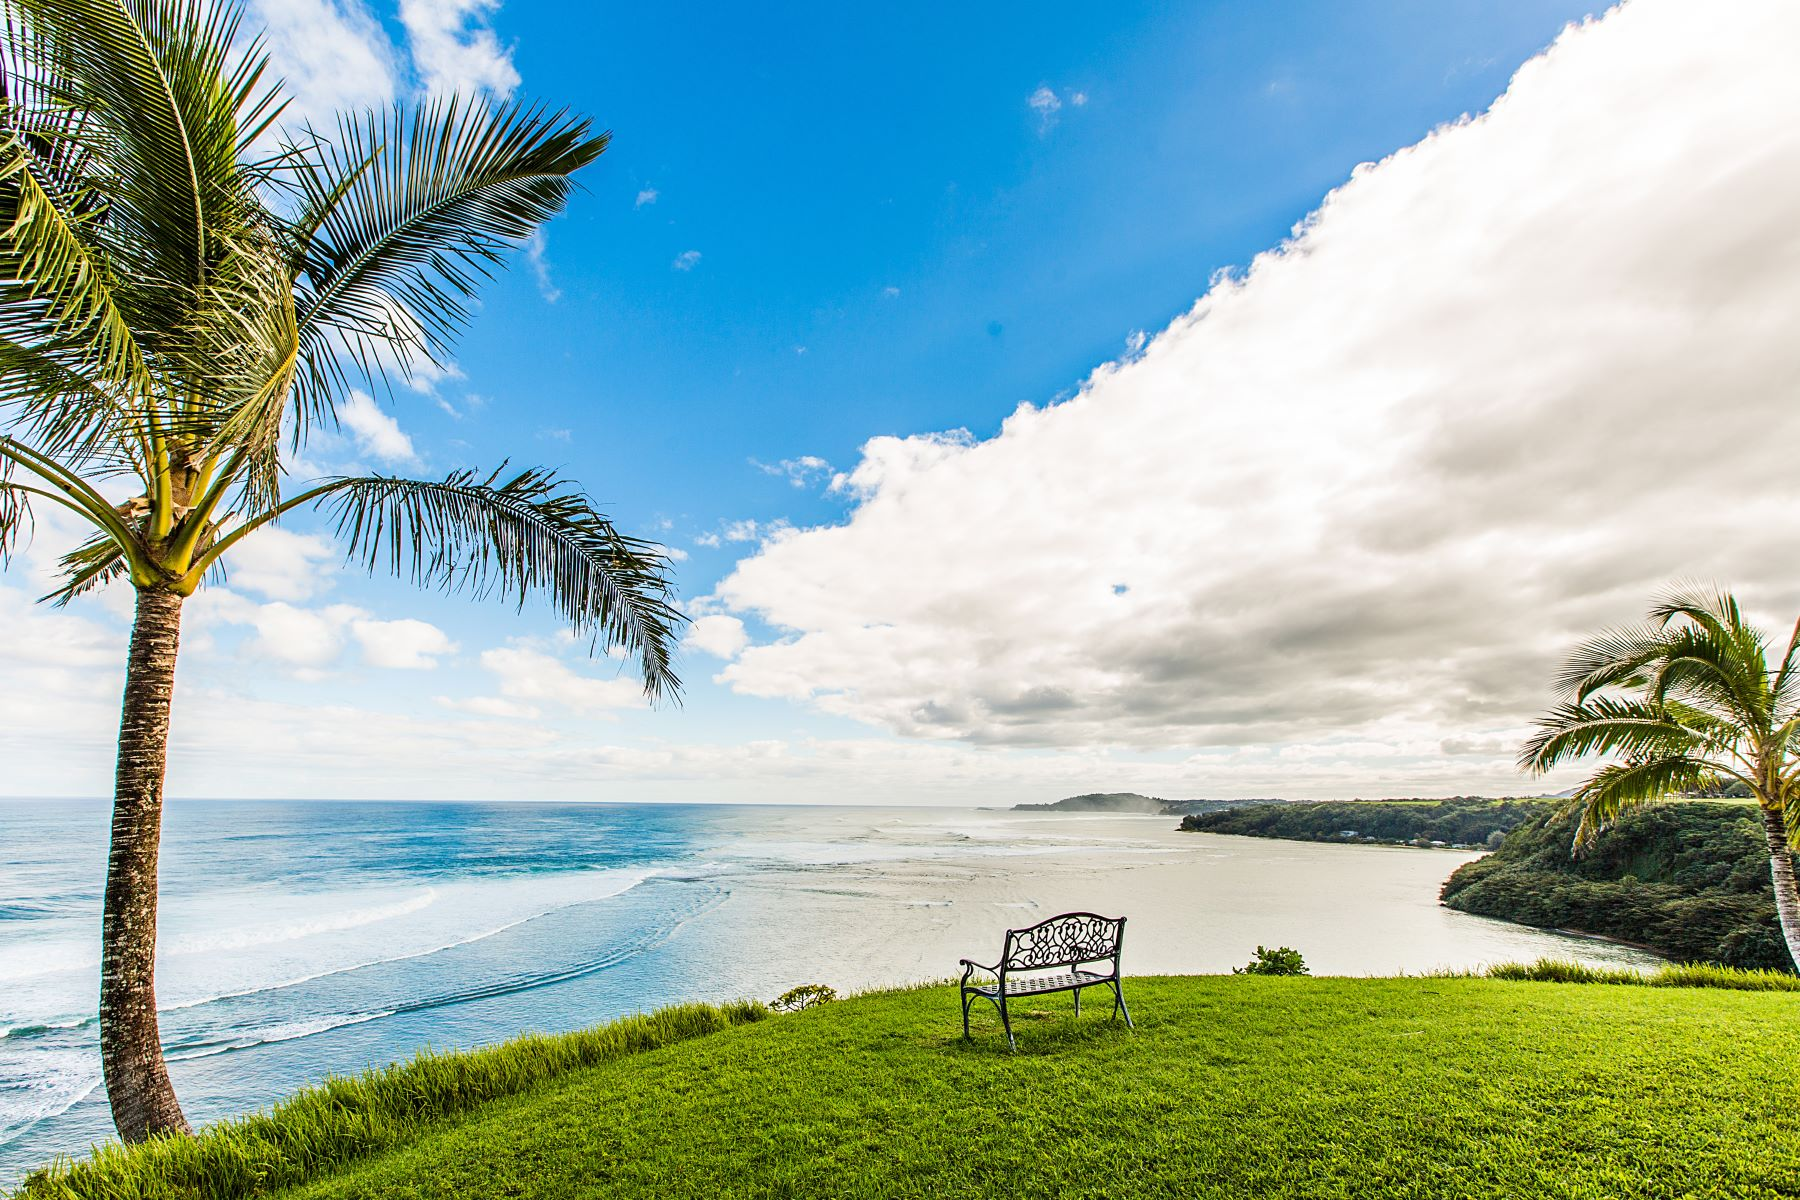 共管式独立产权公寓 为 销售 在 Ocean Views from this Two Bedroom, Two Bath Condominium on Kauai 3700 Kamehameha Road #D7, 普林斯维尔, 夏威夷, 96722 美国